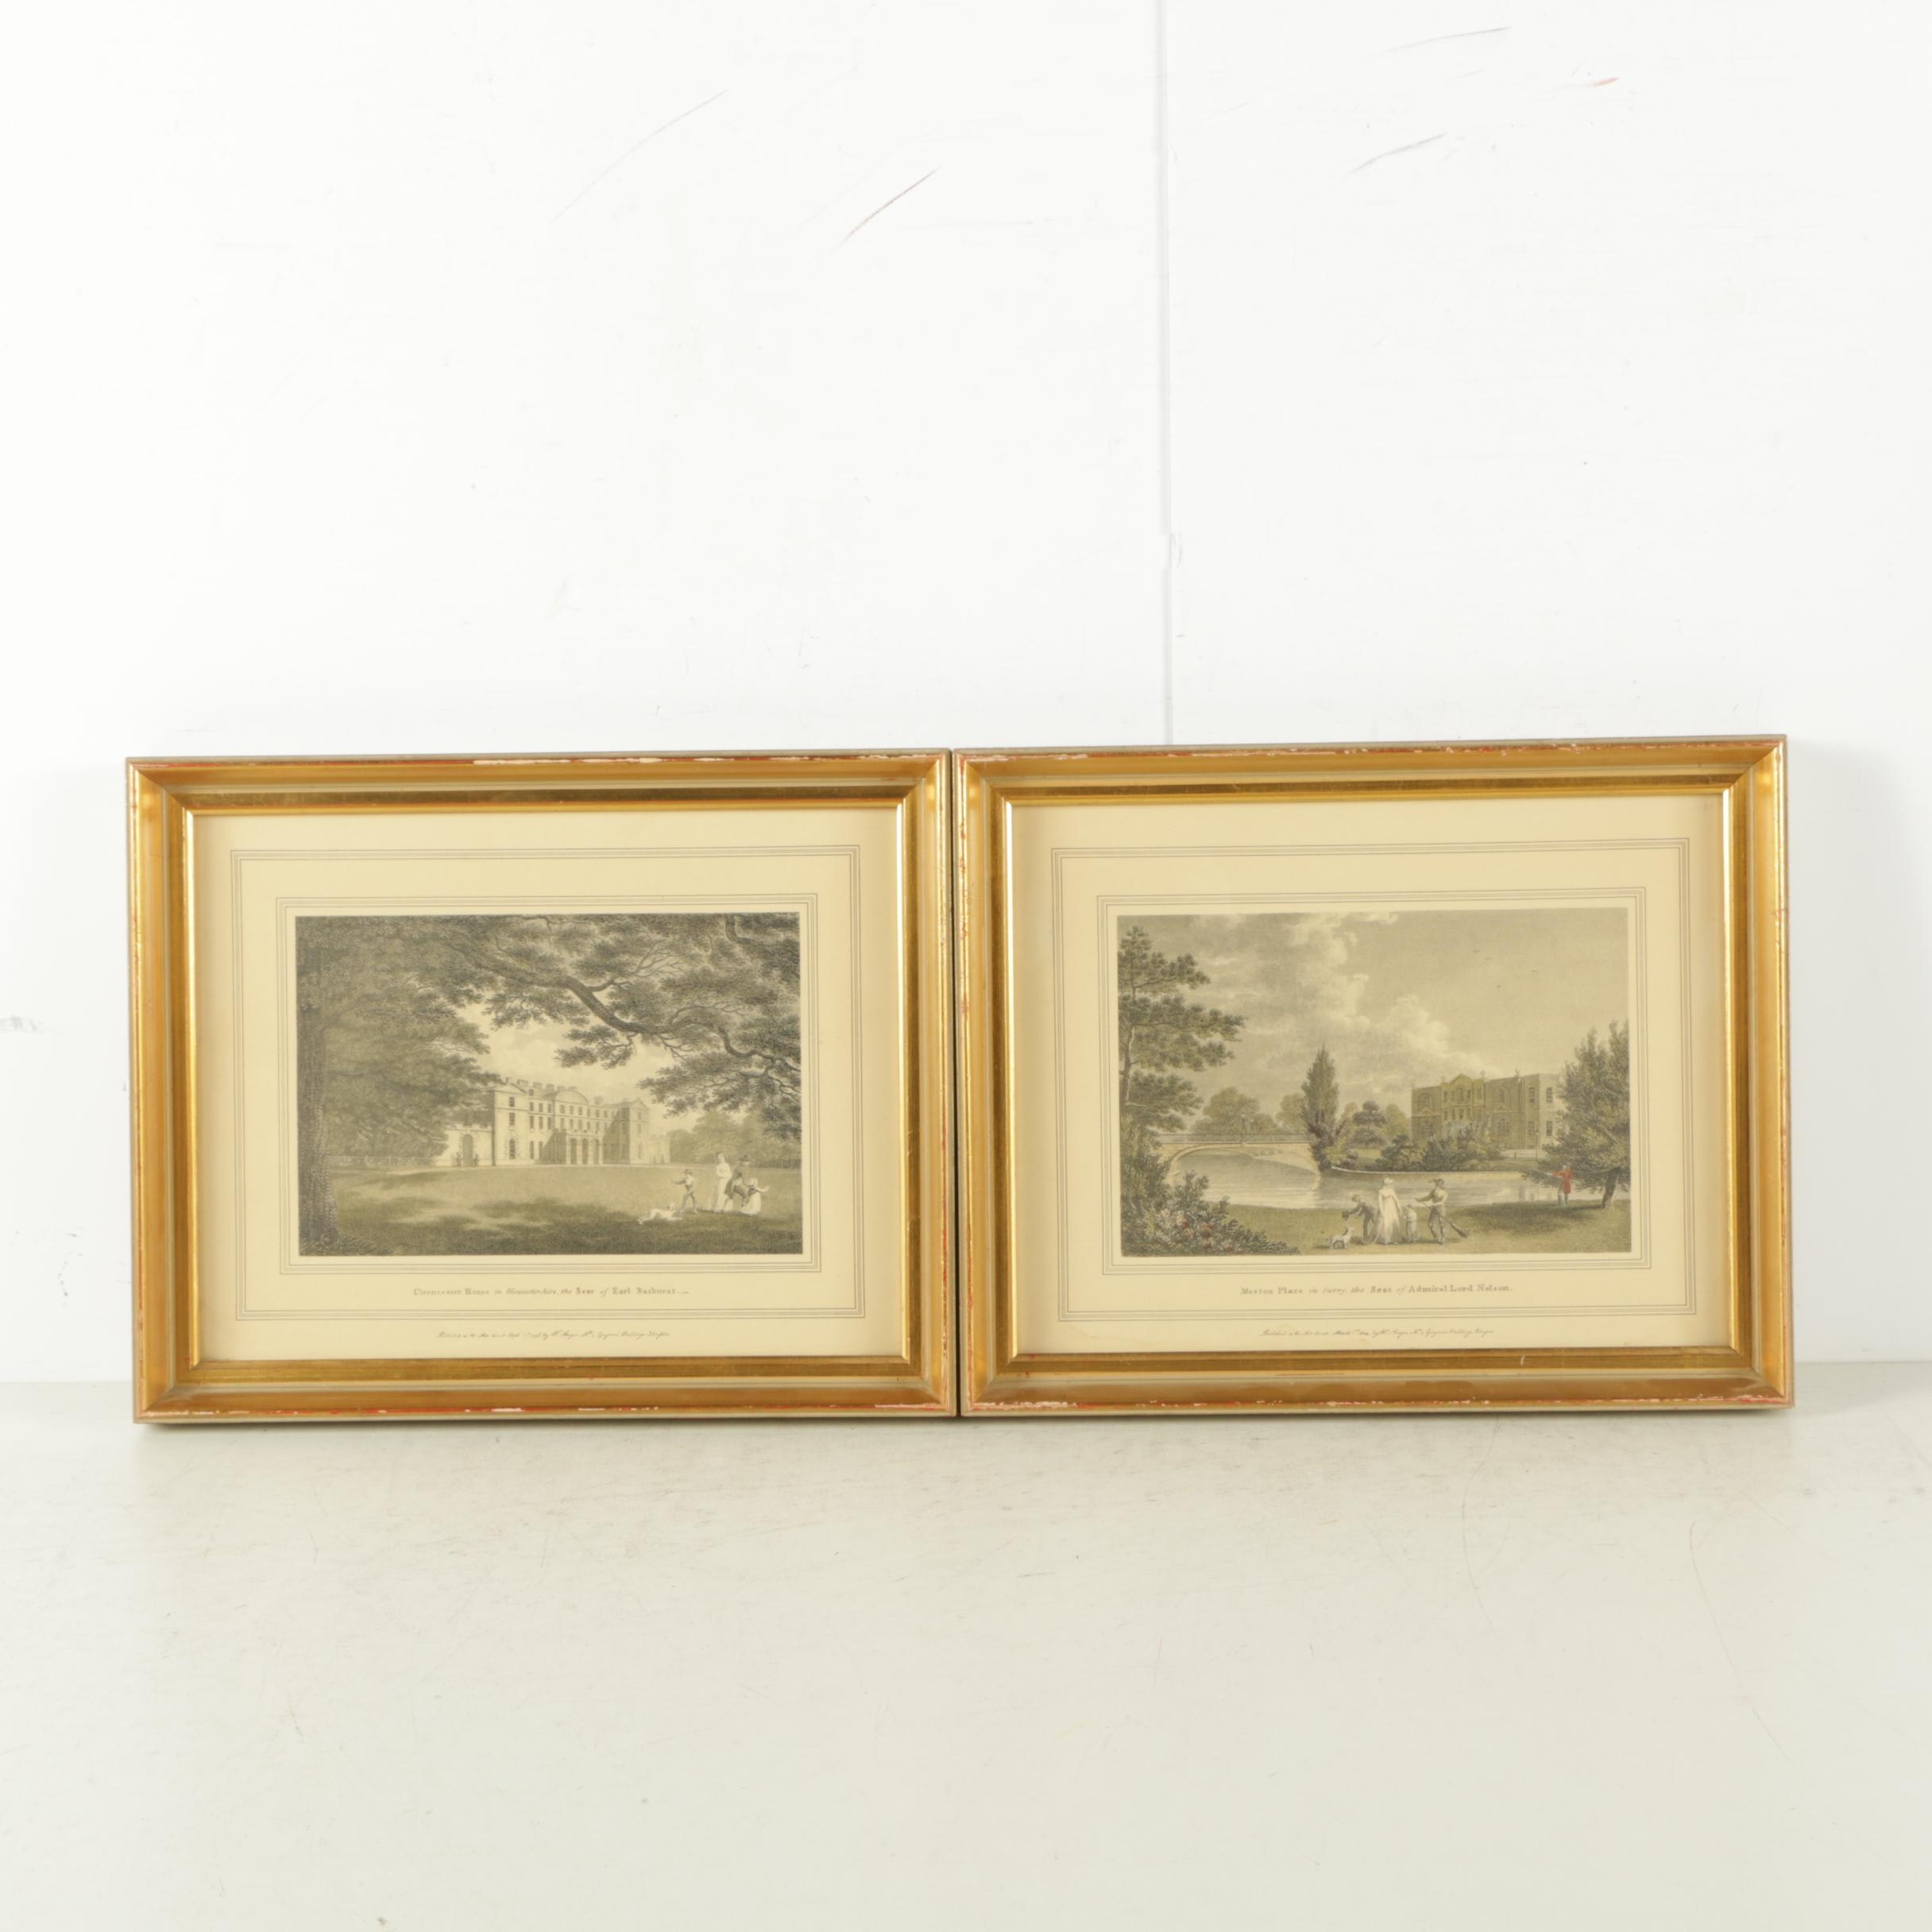 Lithographs After W. Angus Etchings of Estates